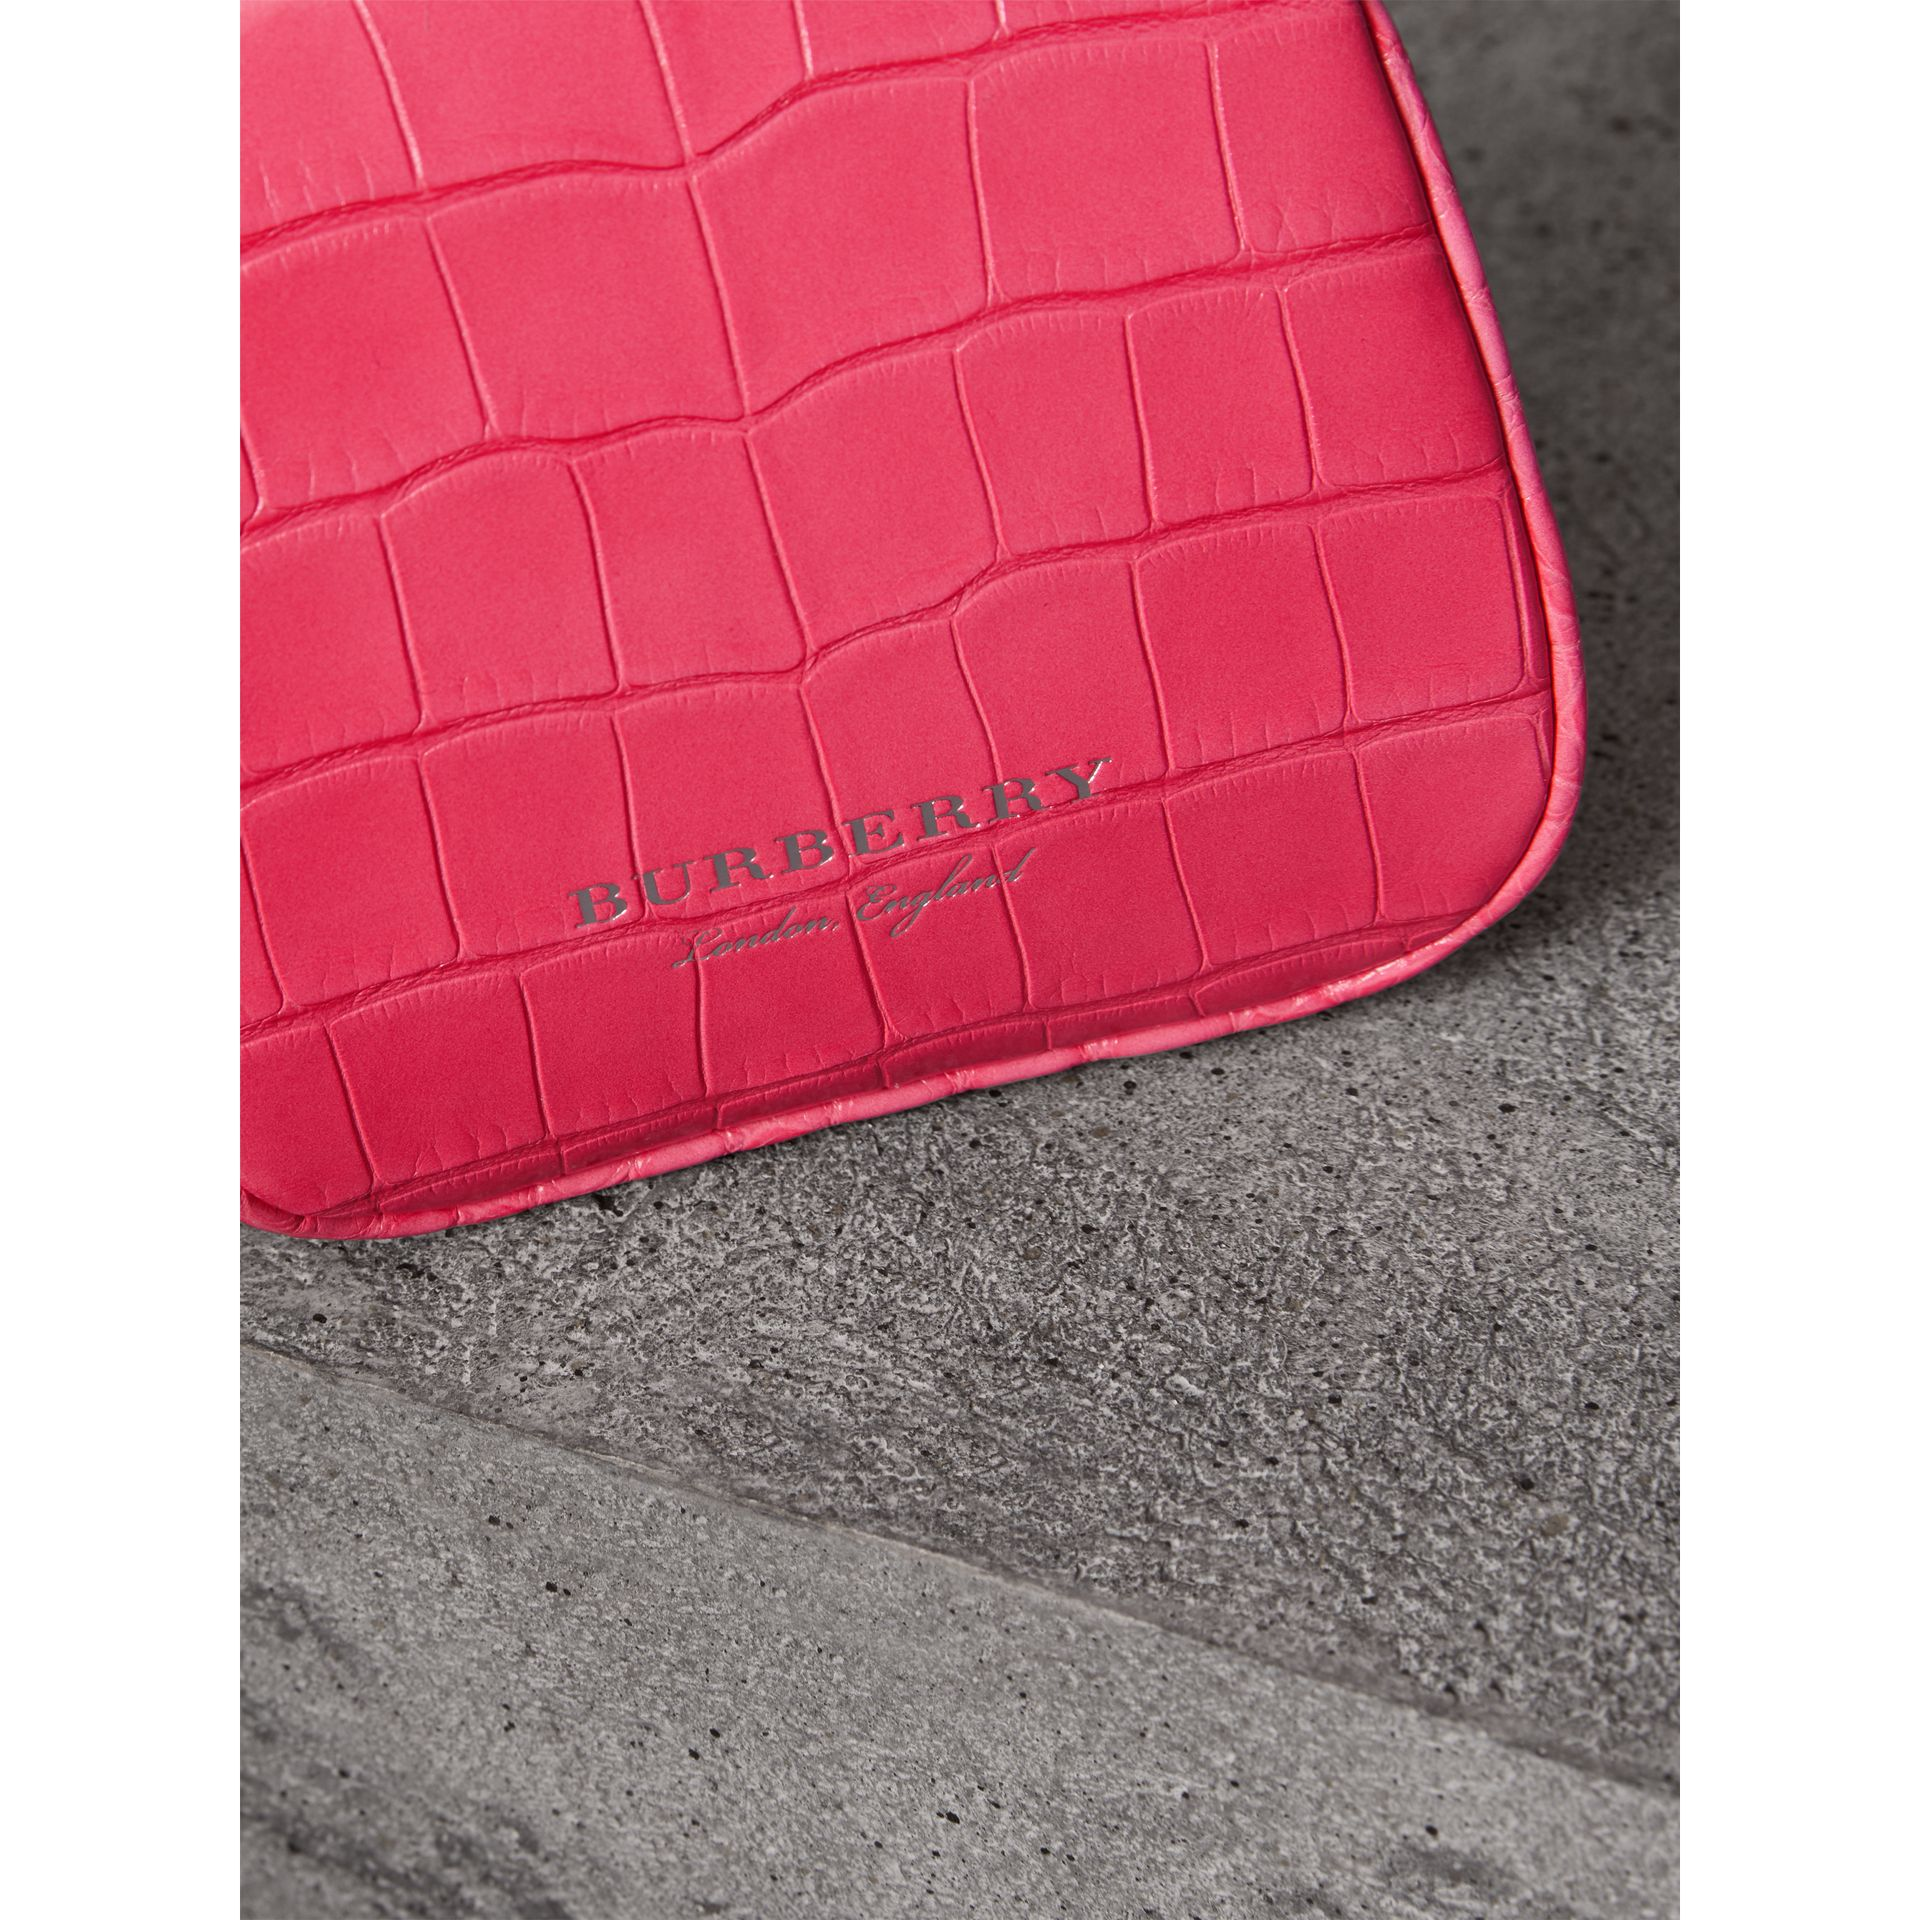 Mini Alligator Metal Frame Clutch Bag in Neon Pink - Women | Burberry Hong Kong - gallery image 1